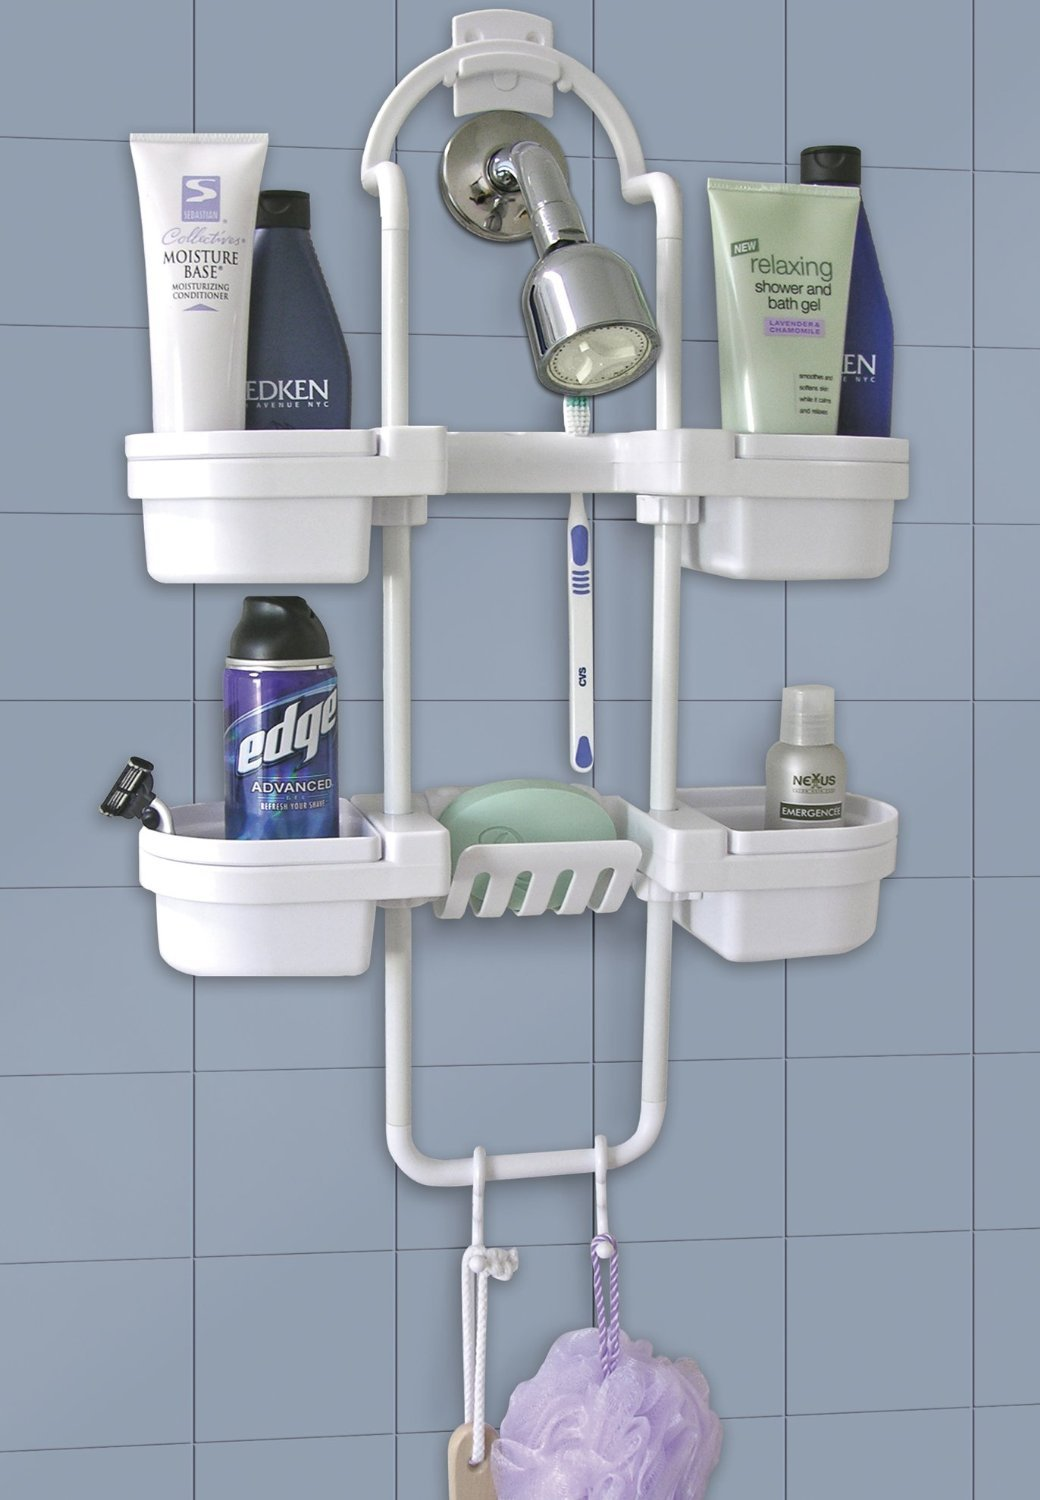 Amazon.com: Shower Caddy: Home & Kitchen